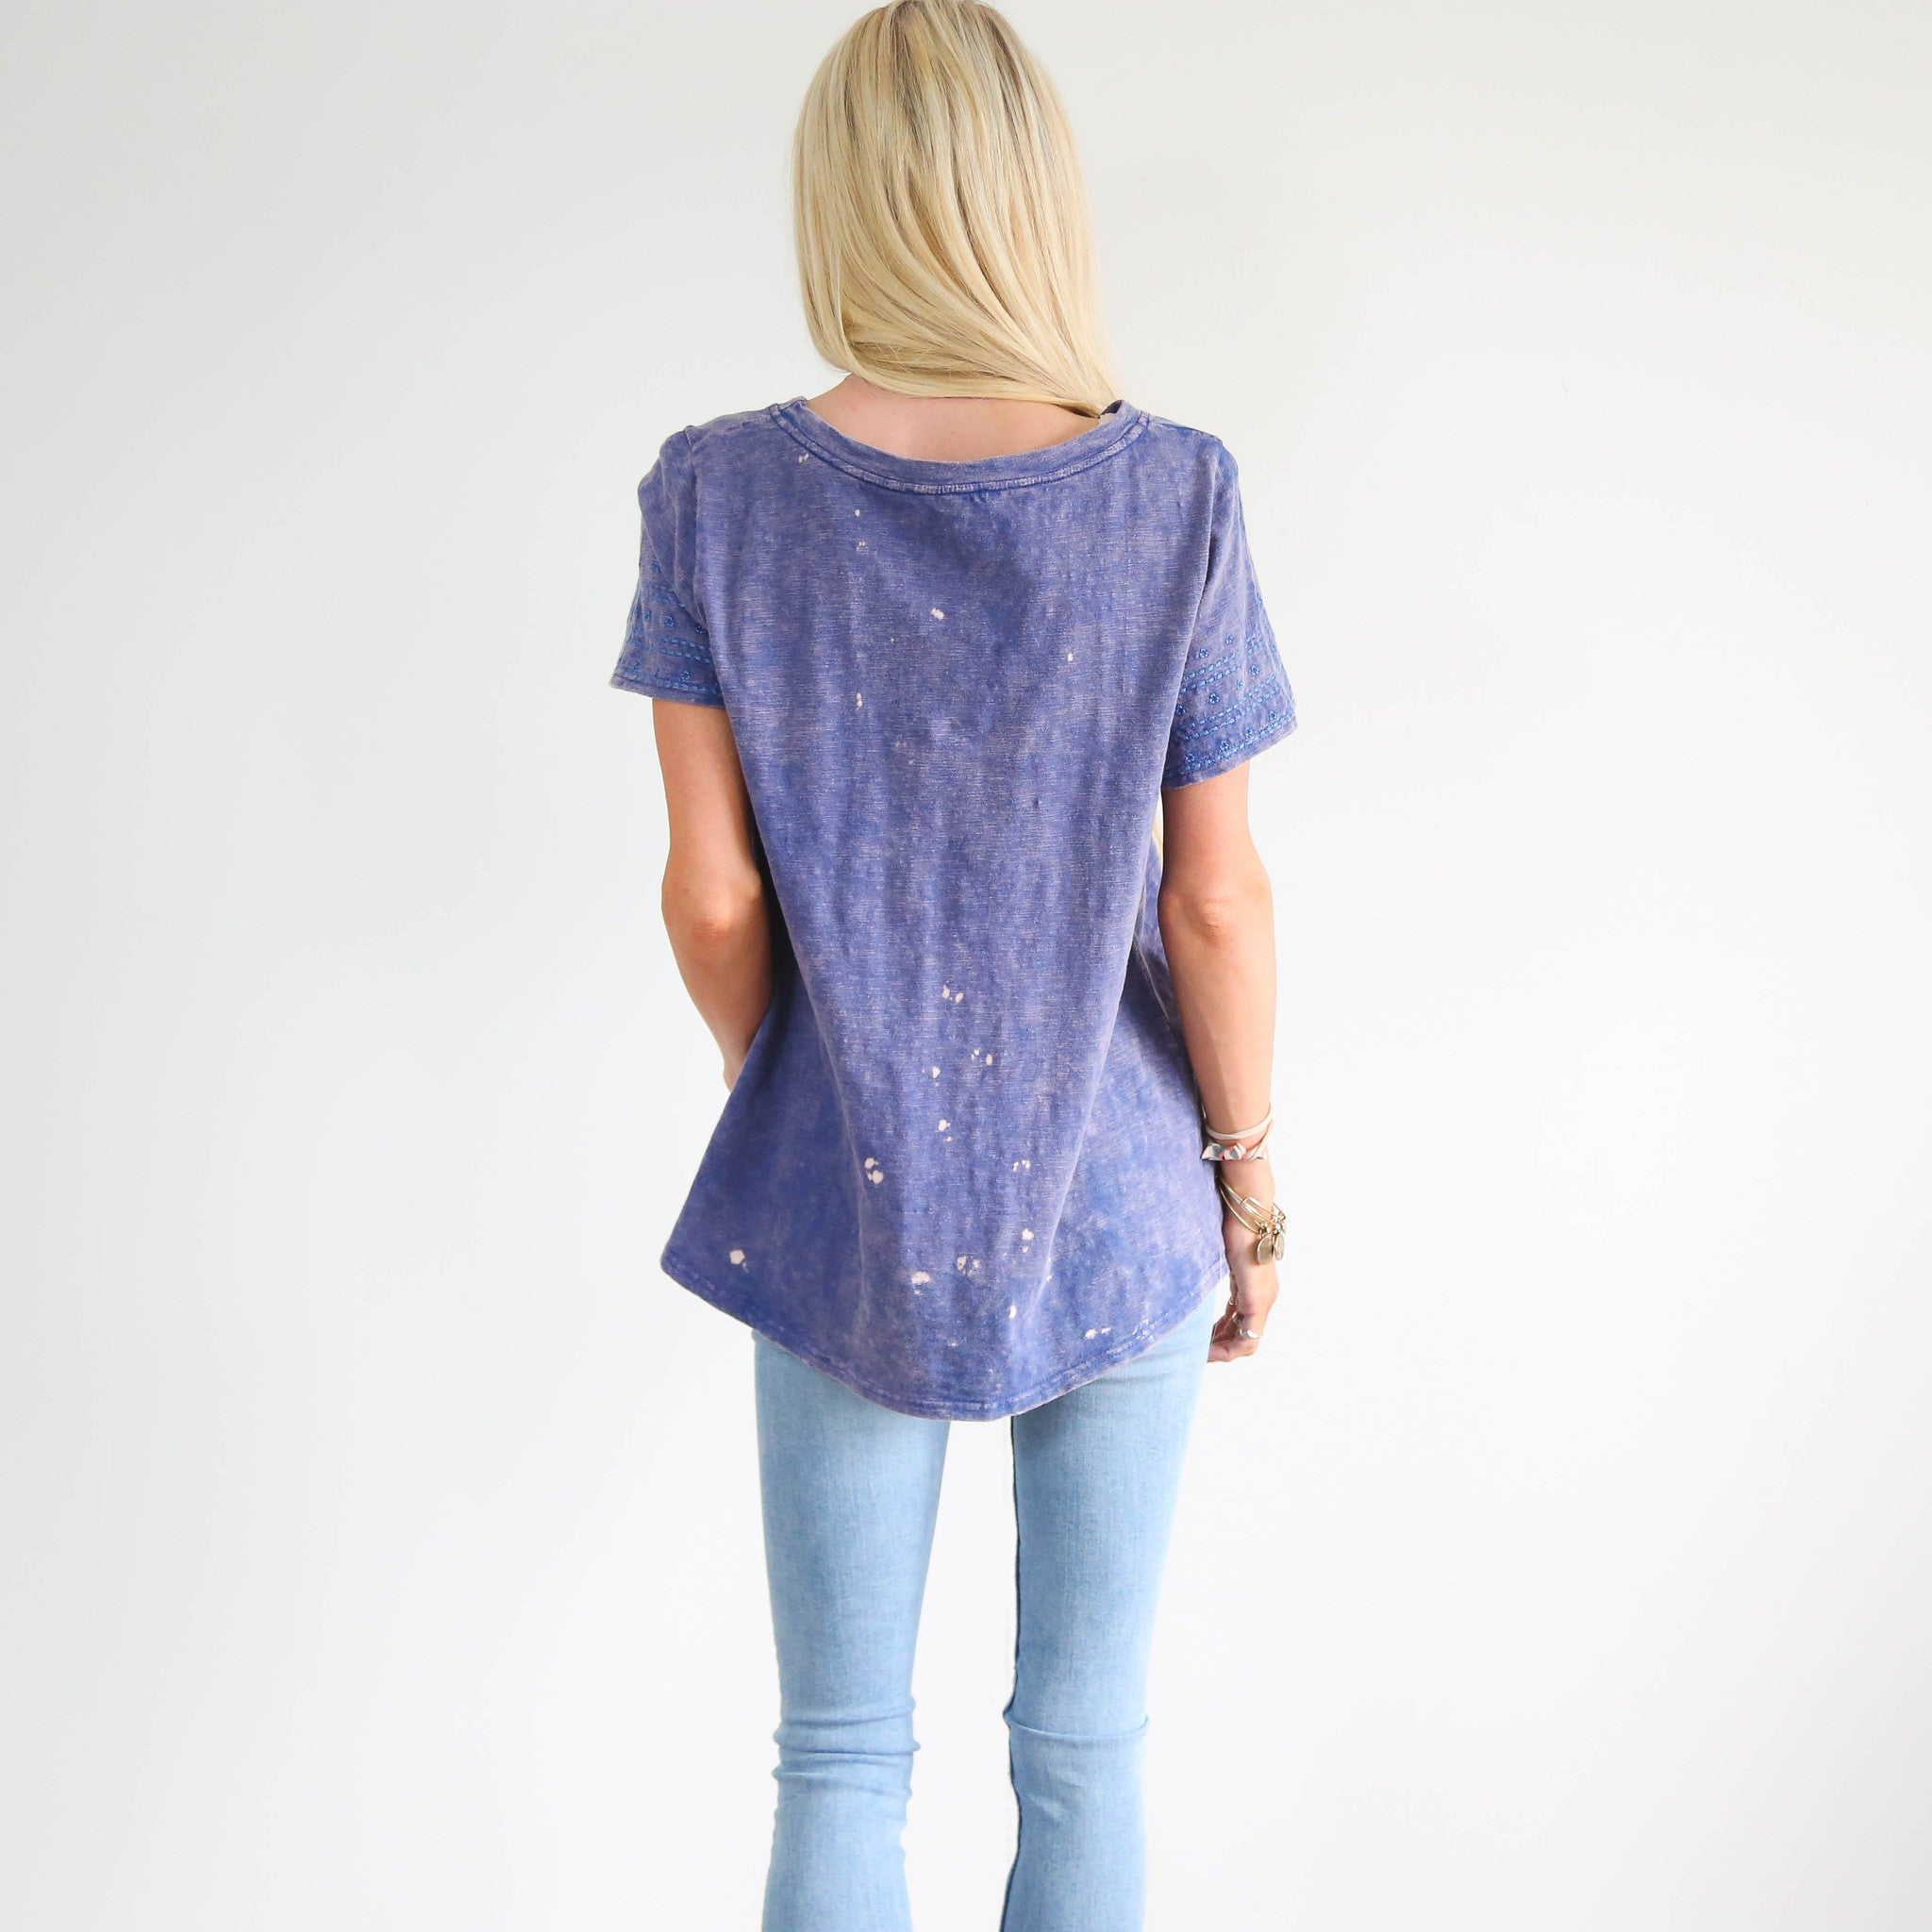 Paige Embroidered Top